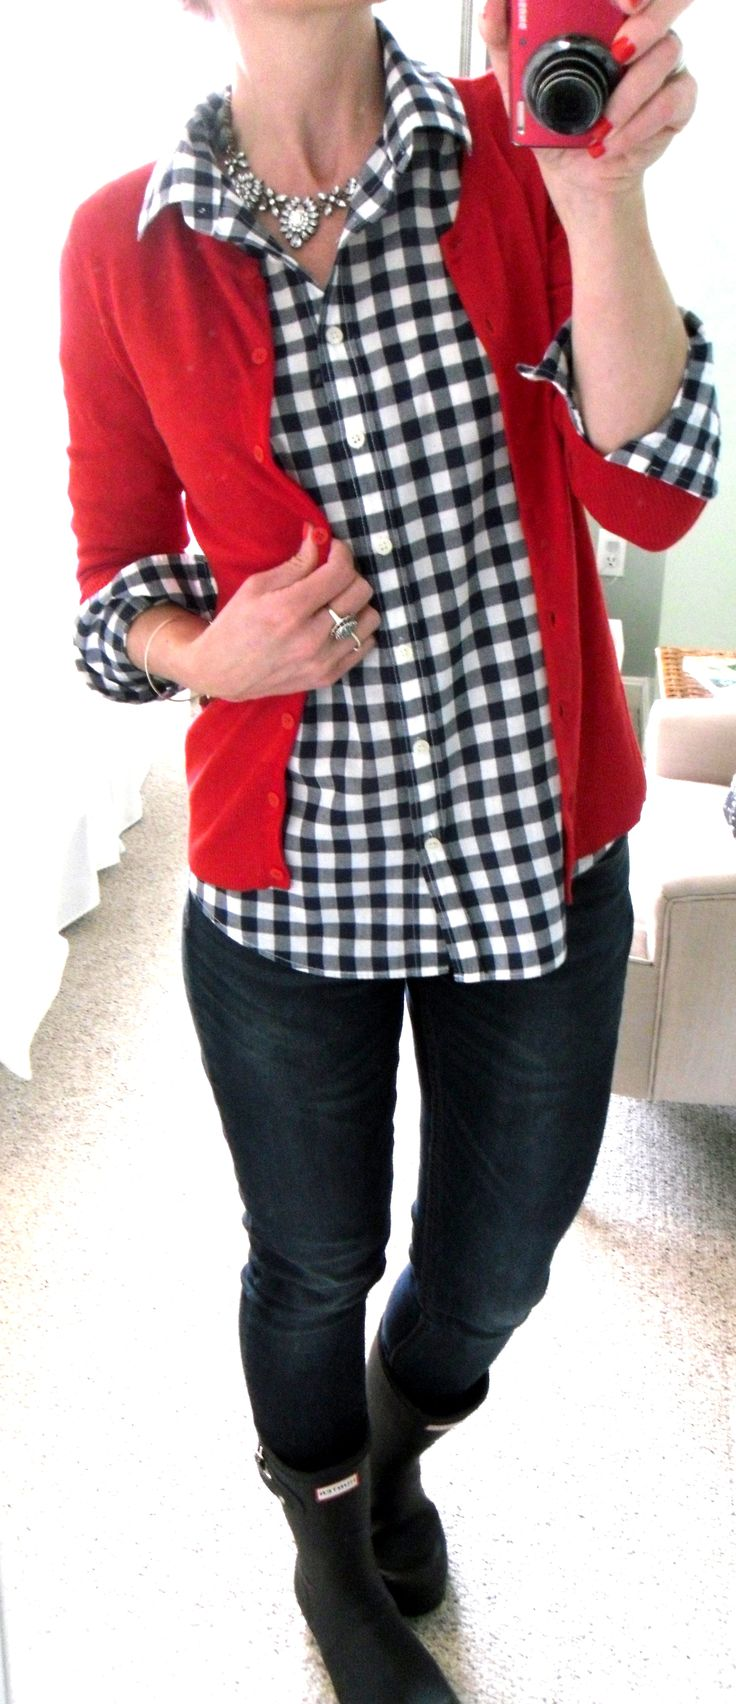 J. Crew blue and white gingham shirt, Jones New York red cardigan, skinny jeans, Hunter short black rain boots